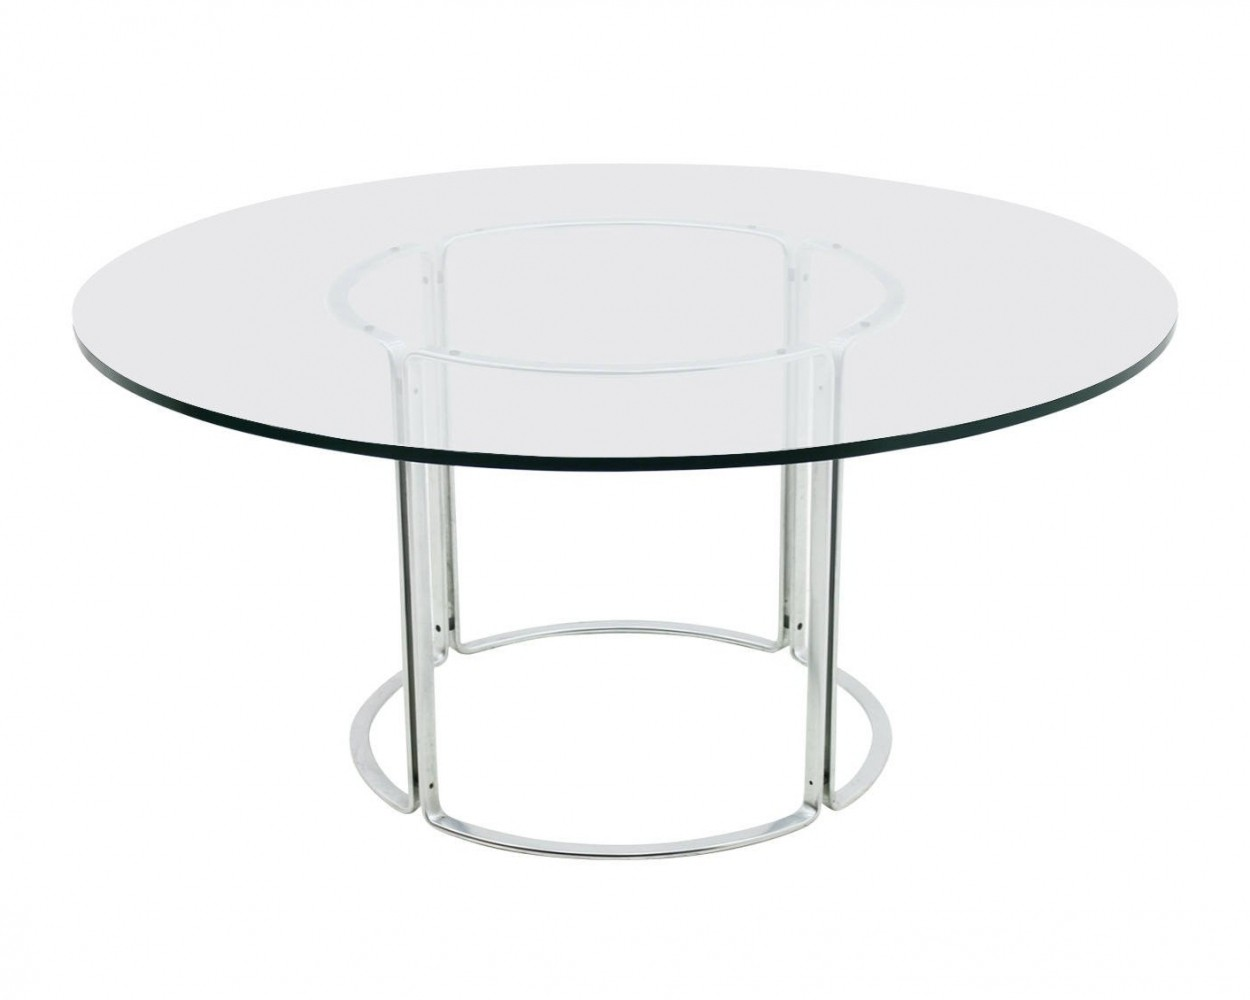 Large Glass & Steel Dining Table by Horst Brüning for Kill International, 1970s